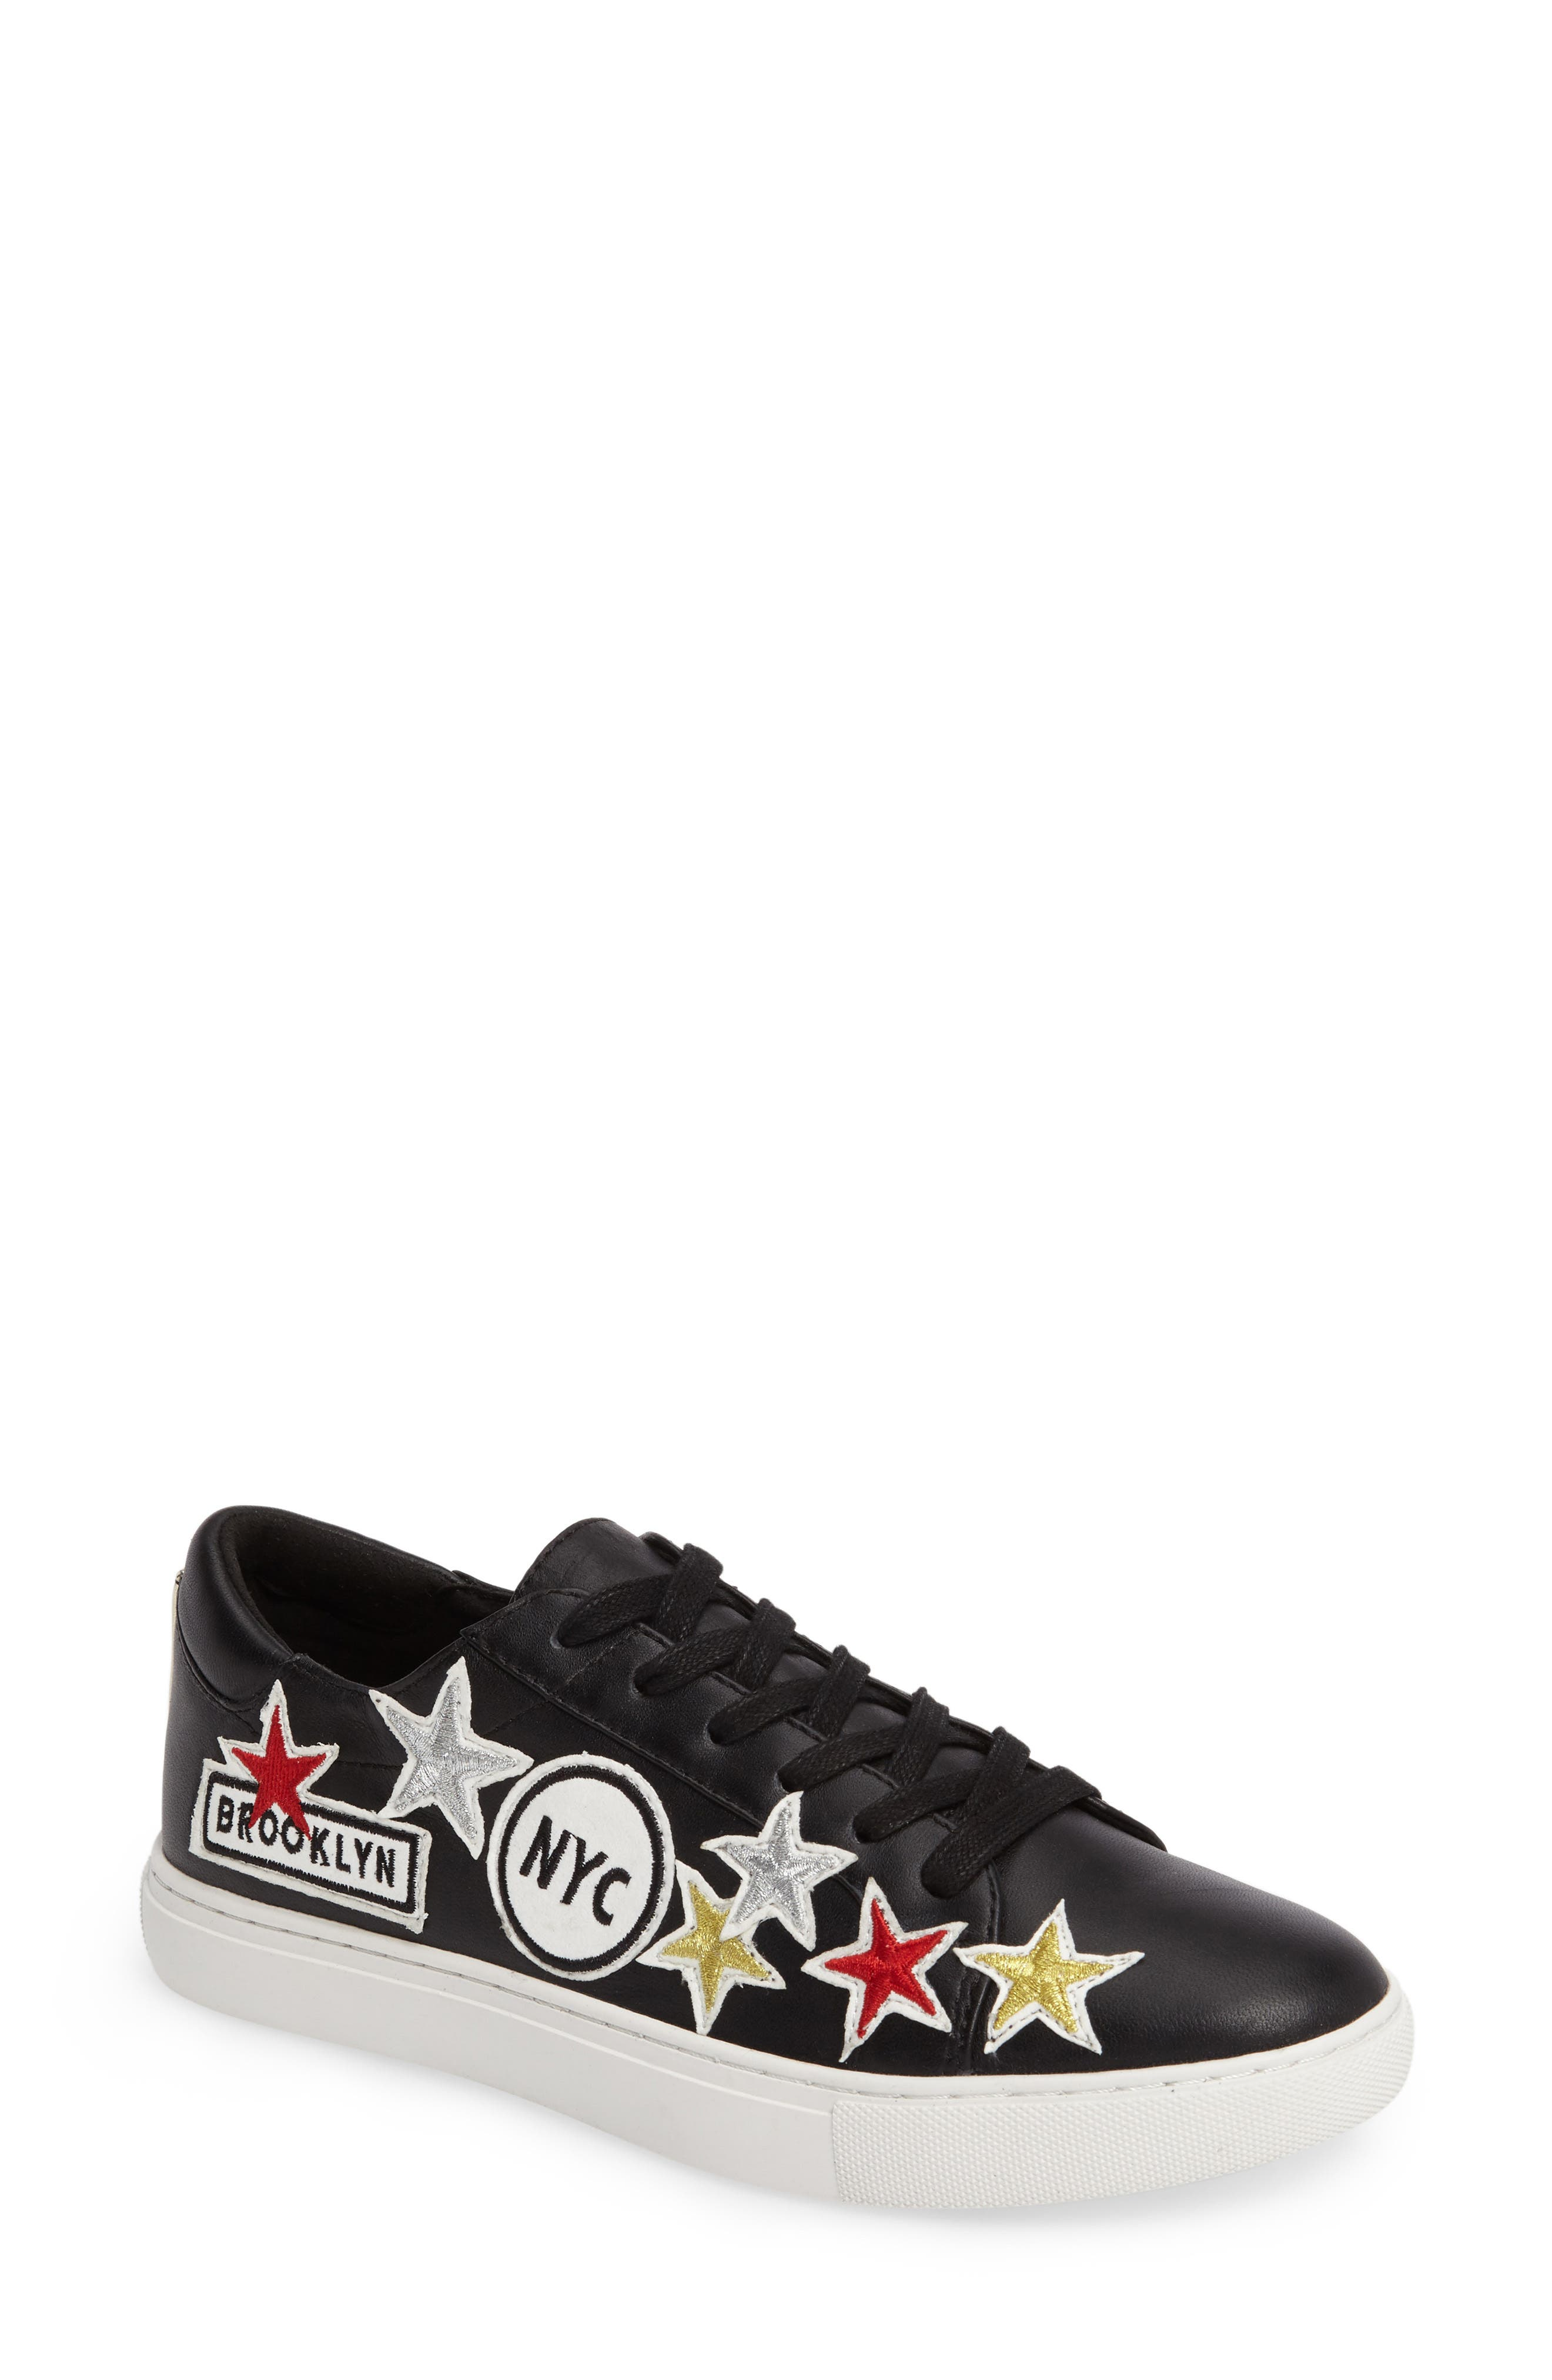 Kam NYC Sneaker,                             Main thumbnail 1, color,                             Black Leather